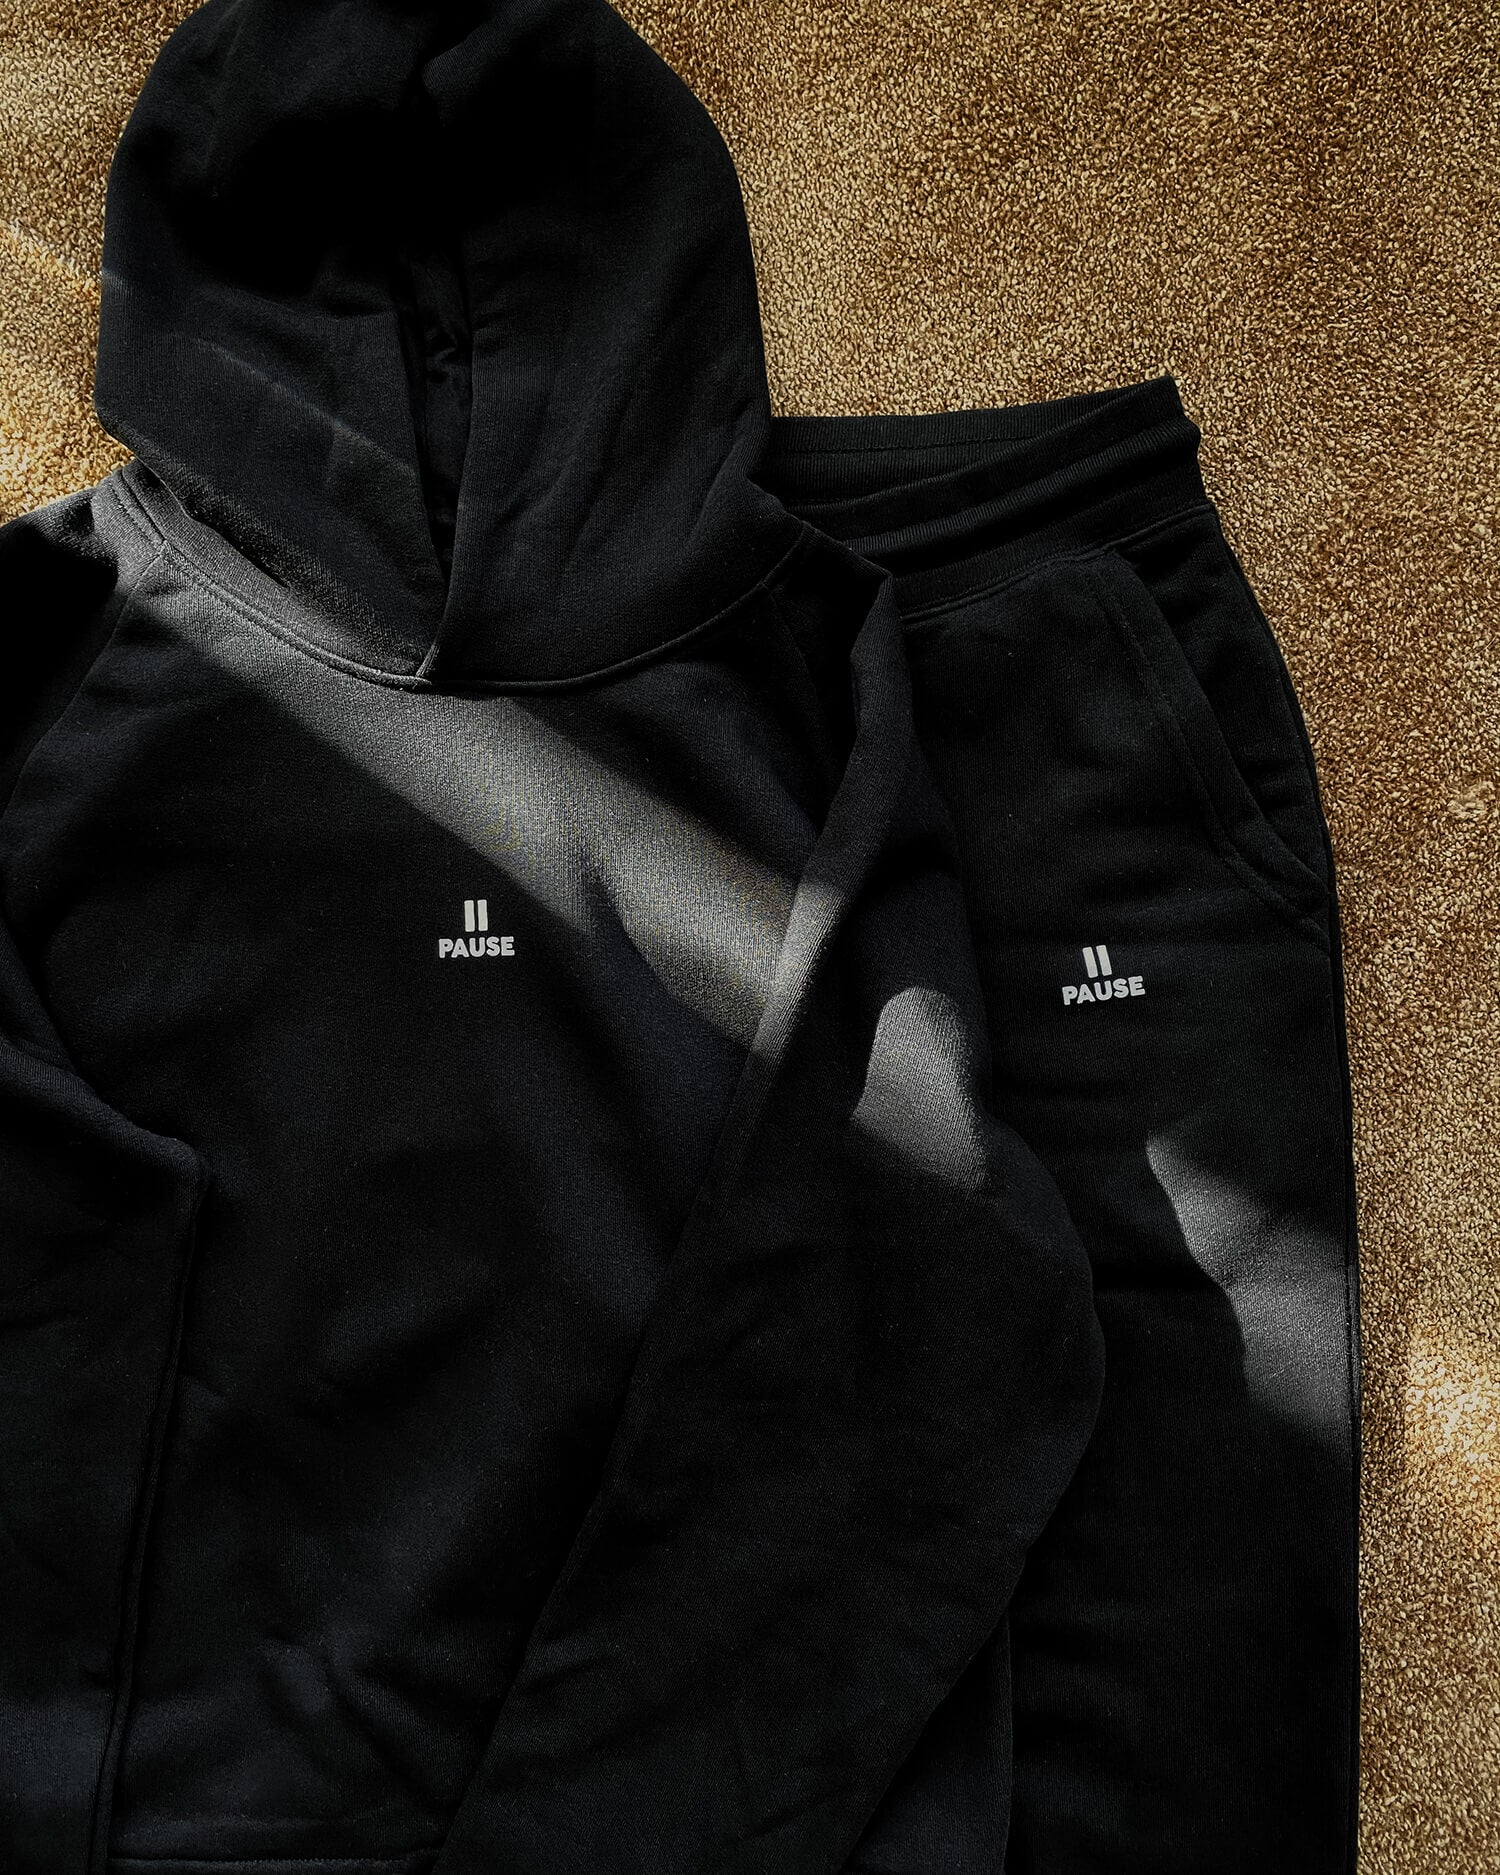 Pause Sweatpants (black) - New Comfort Total Look